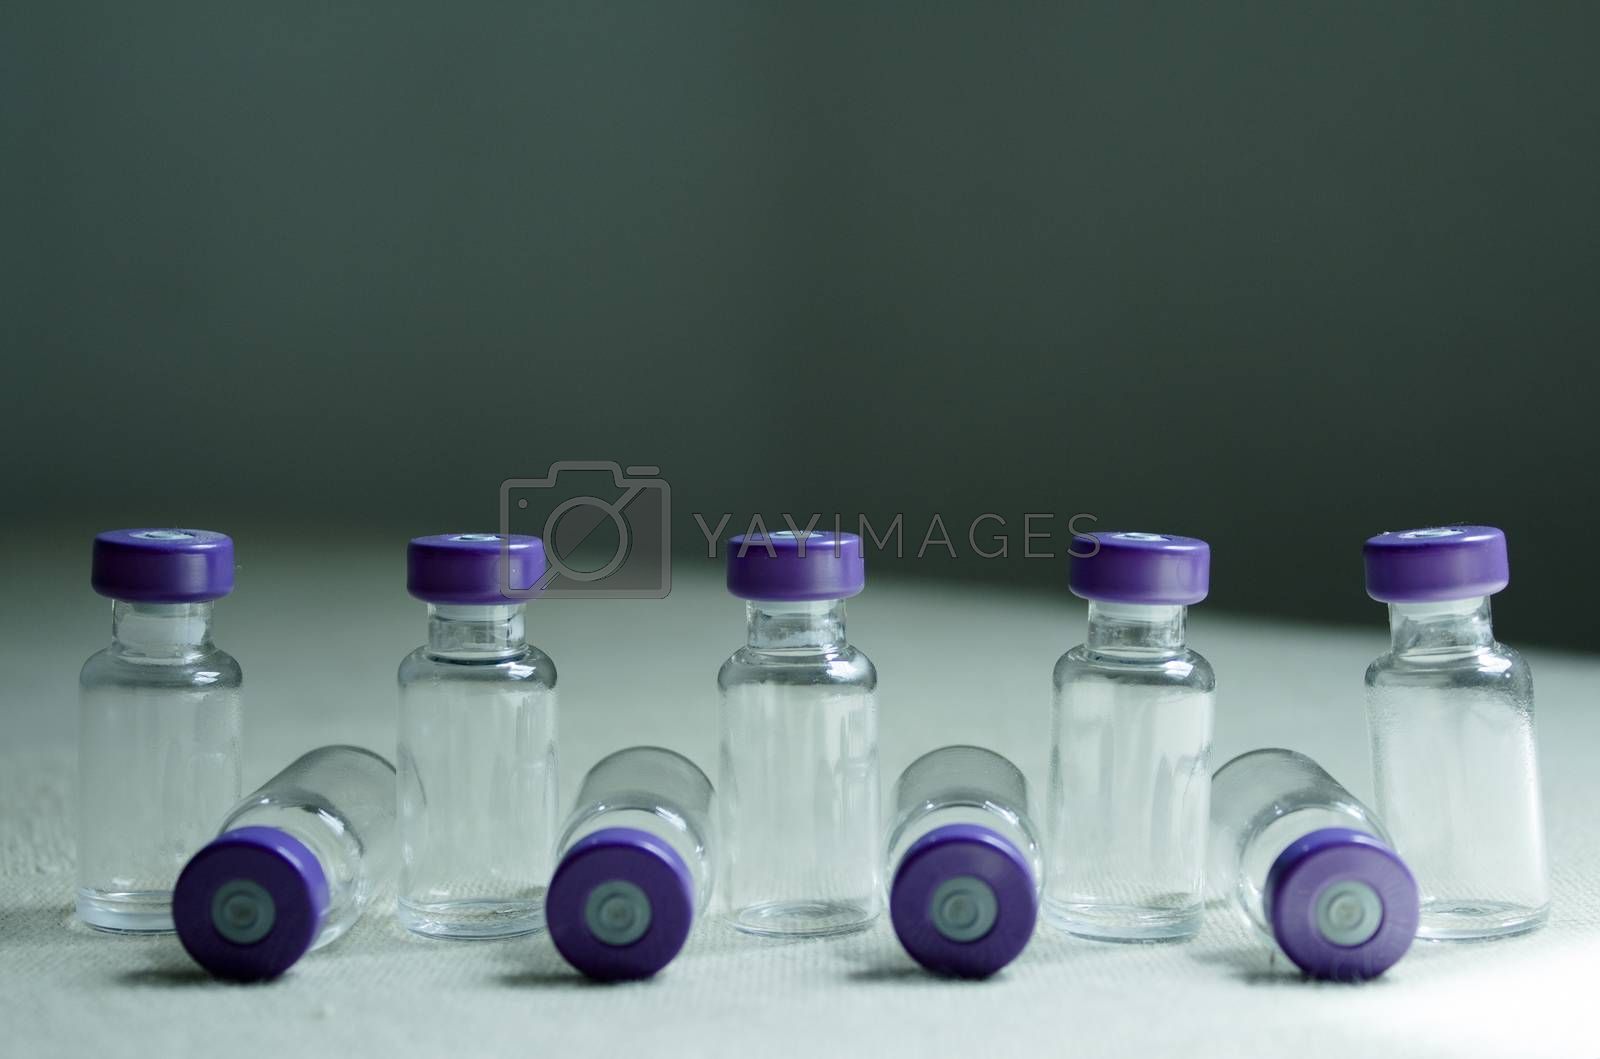 Several empty vials placed online. Greenish background.